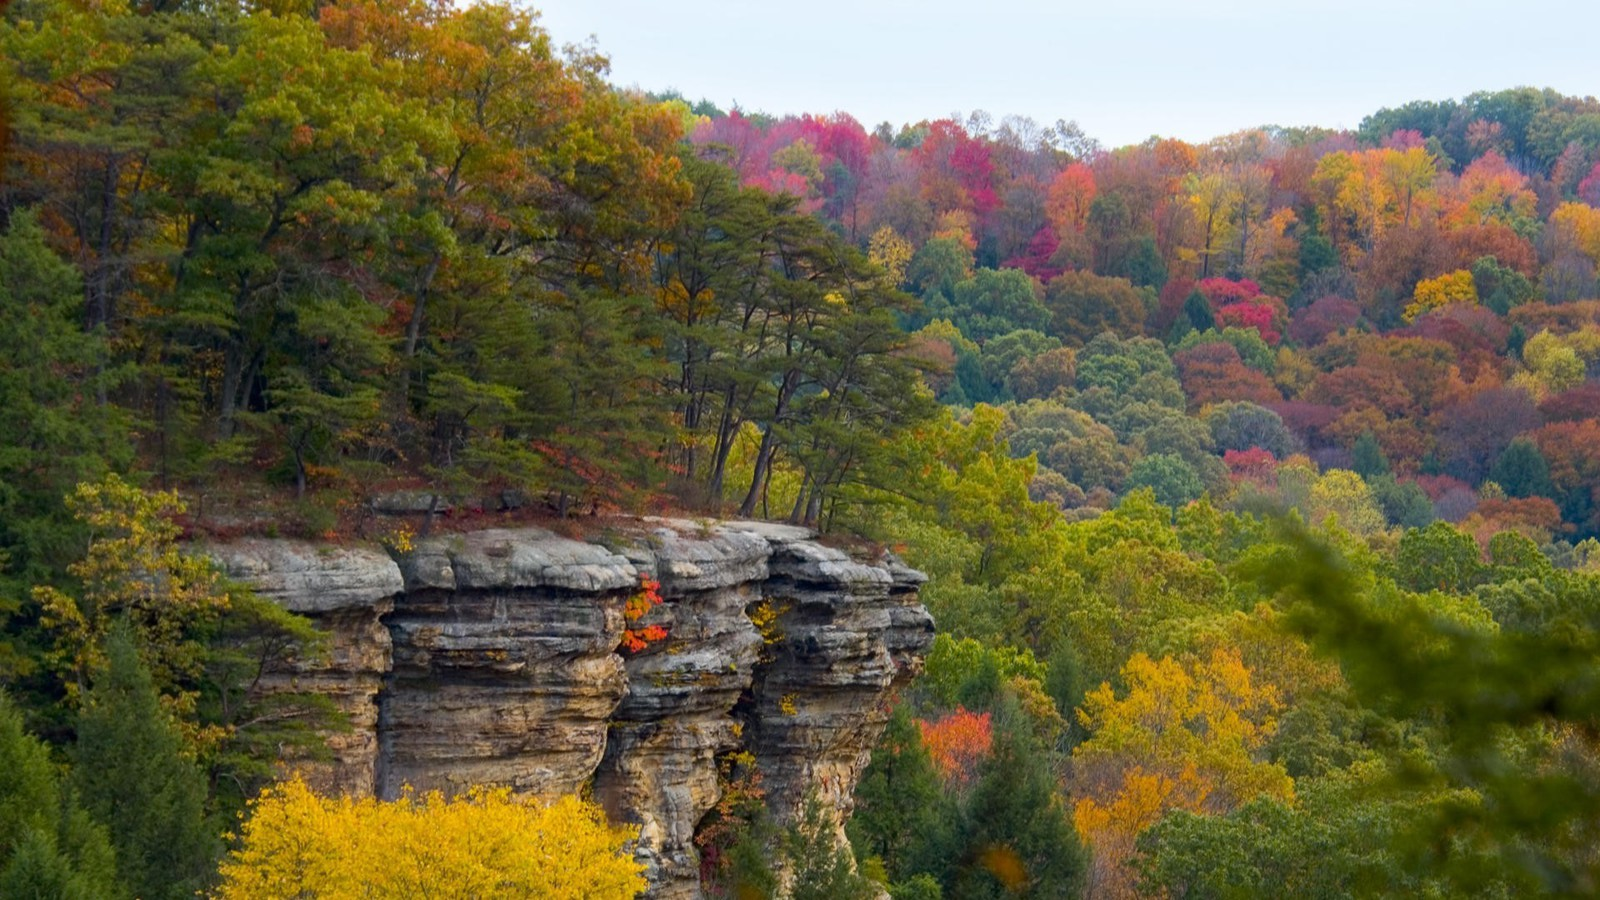 Free Wallpaper Fall 1600x900 Ohio Autumn Hills Wallpaper Allwallpaper In 10689 Pc En